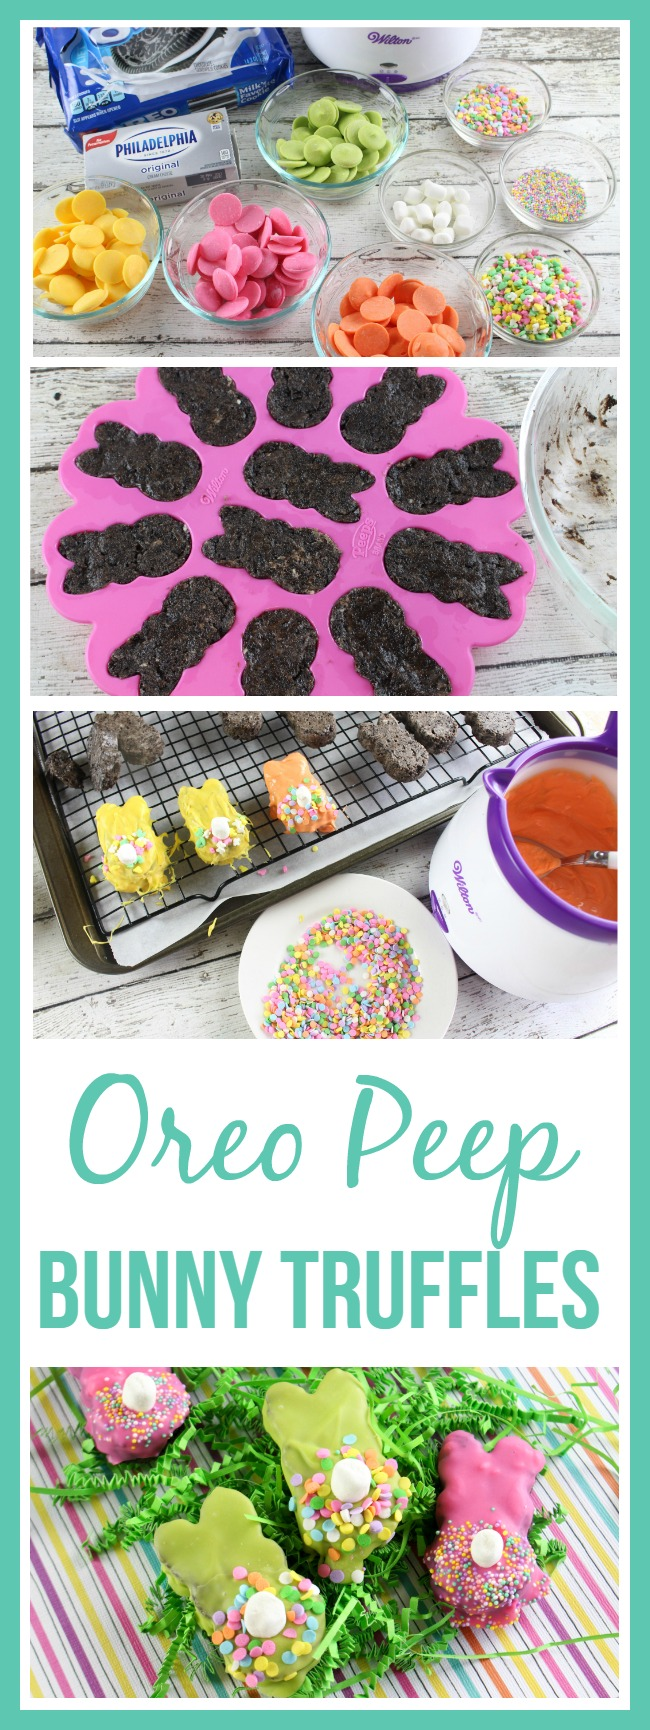 These Oreo Peep Bunny Truffles are delicious and super easy to make! These are sure to be a hit at an Easter recipe!